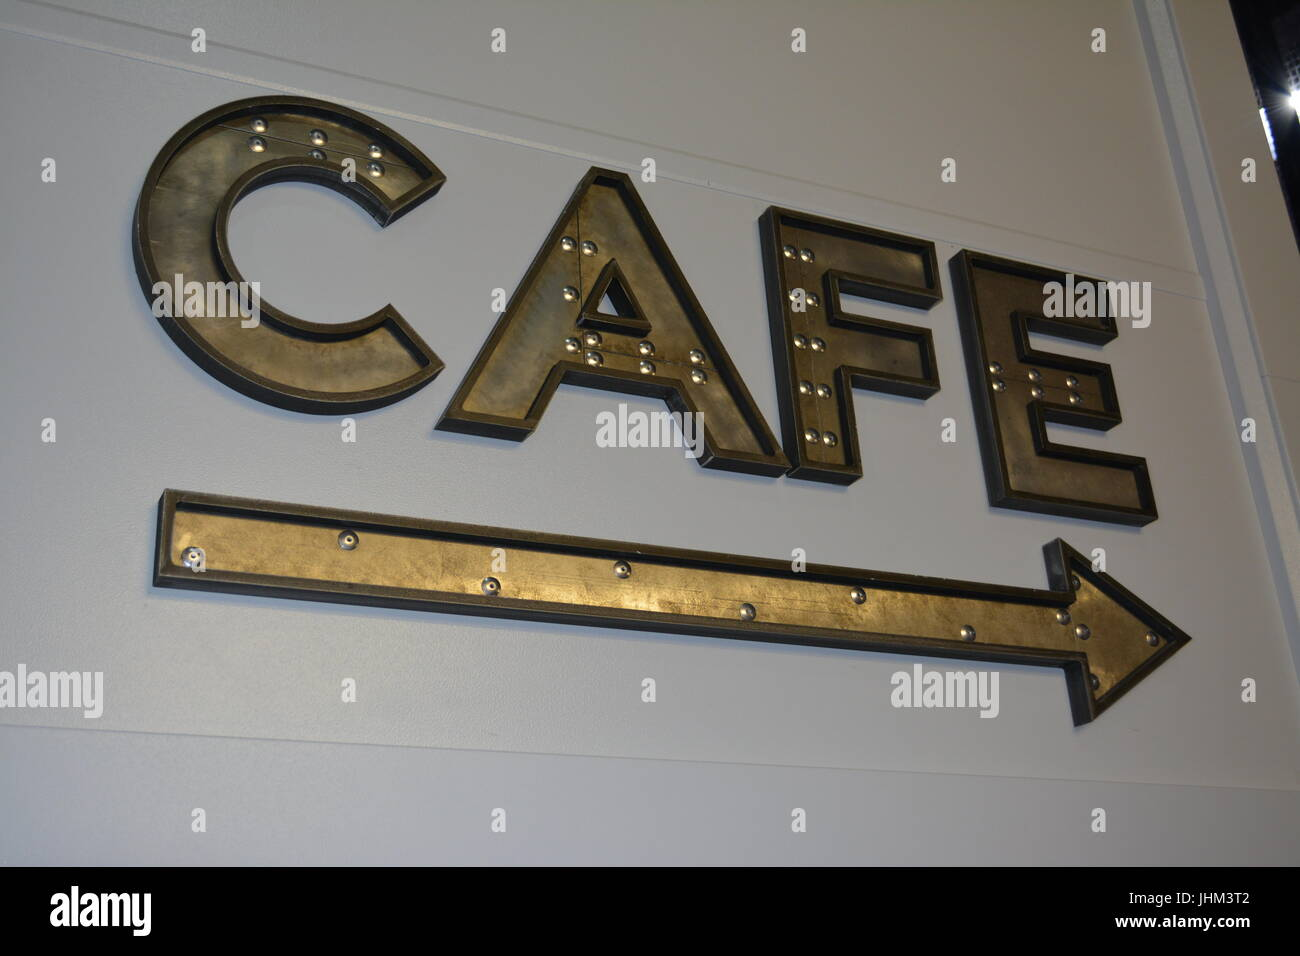 Large metal letters direction sign and arrow pointing to cafe re indoor cafe sign re eating and drinking re socialising - Stock Image